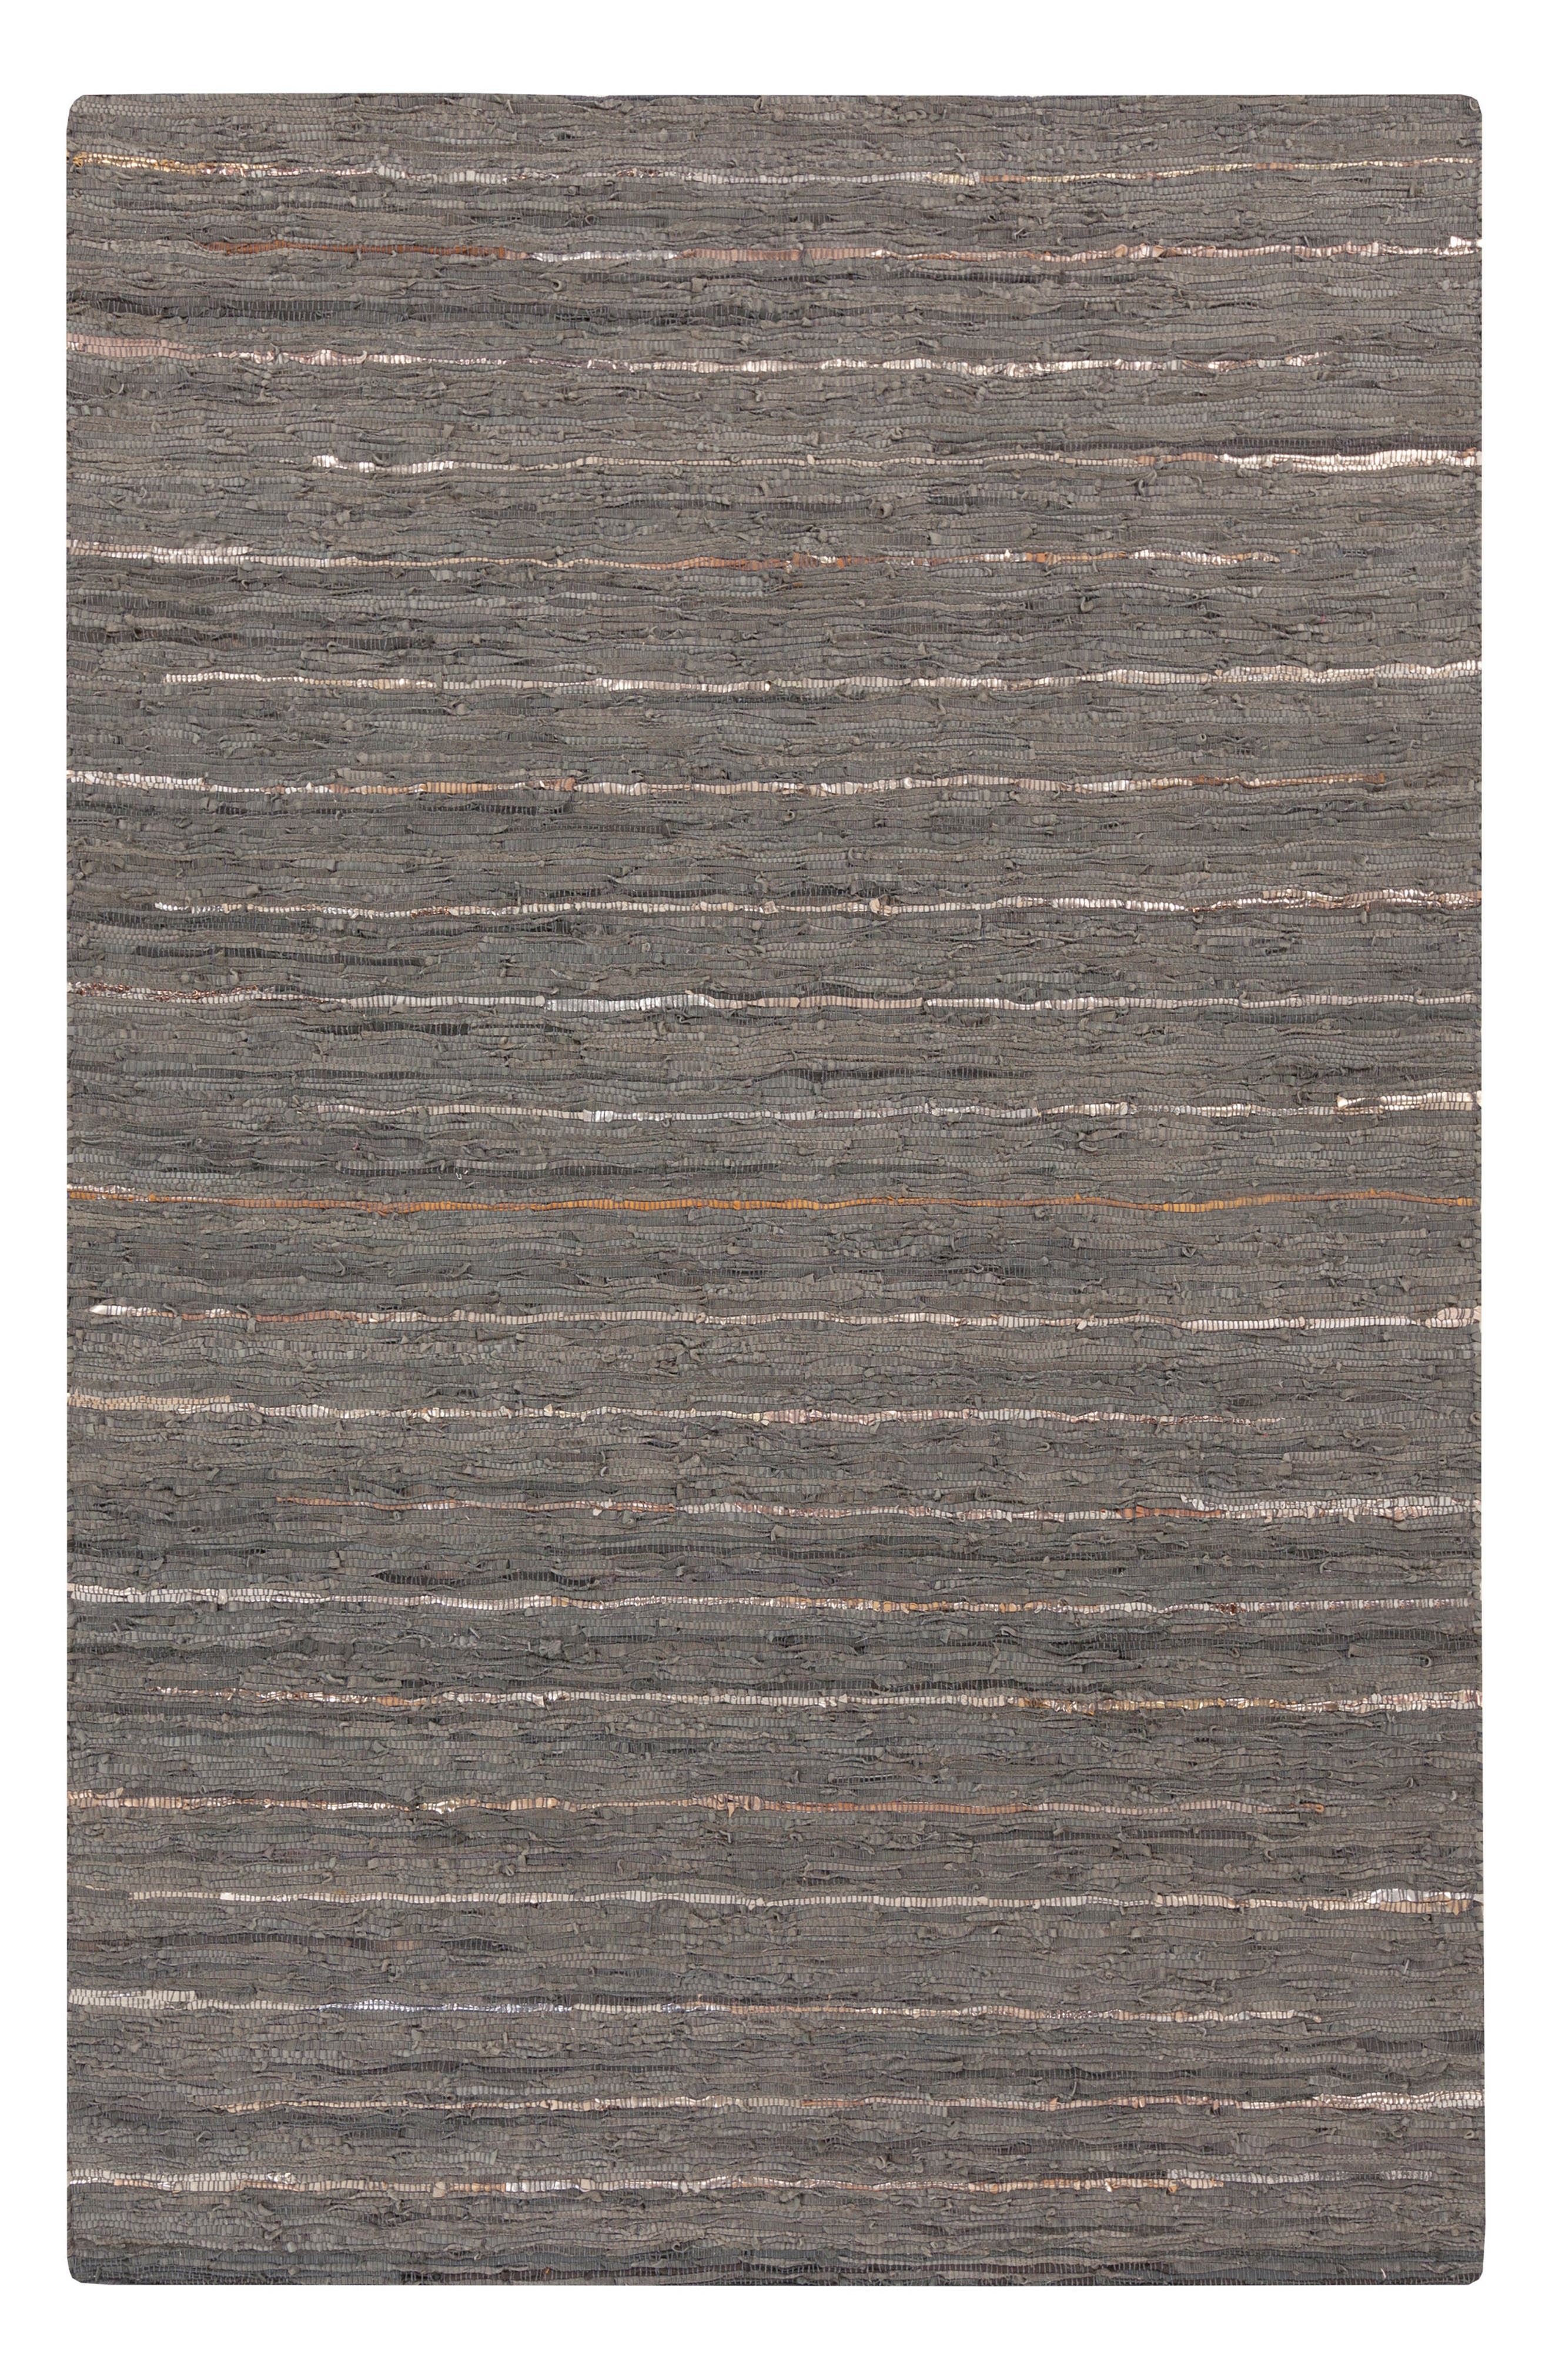 Alternate Image 1 Selected - Surya Home Anthracite Leather Rug